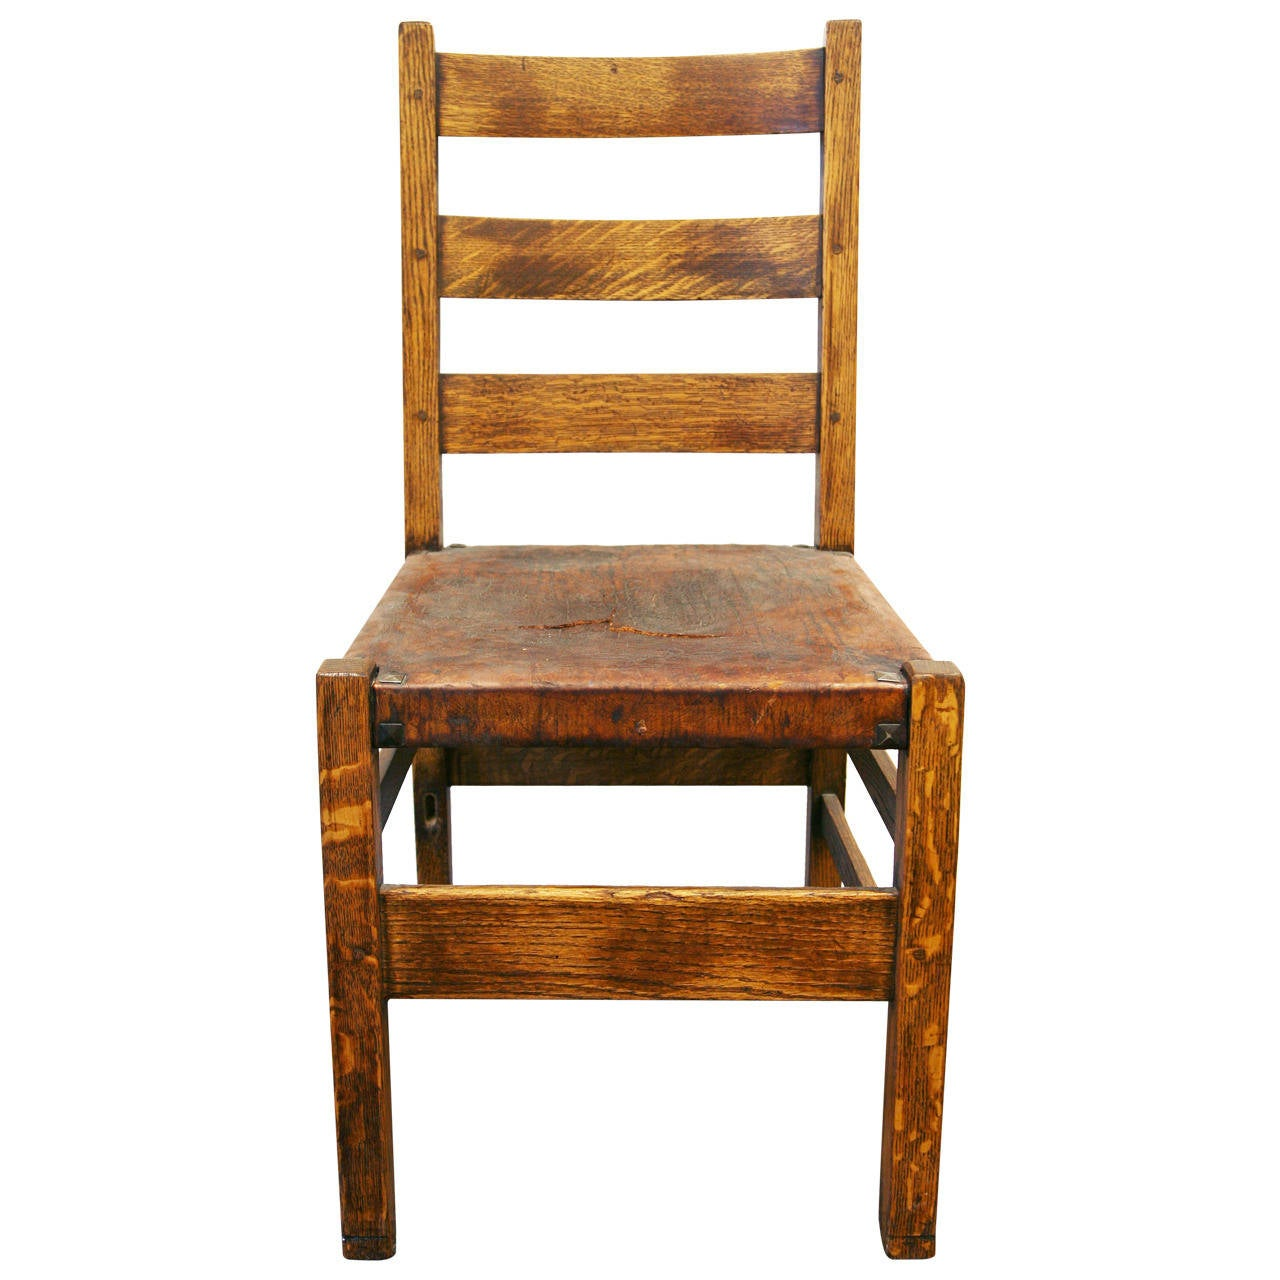 Gustav stickley chair at 1stdibs for Furniture chairs